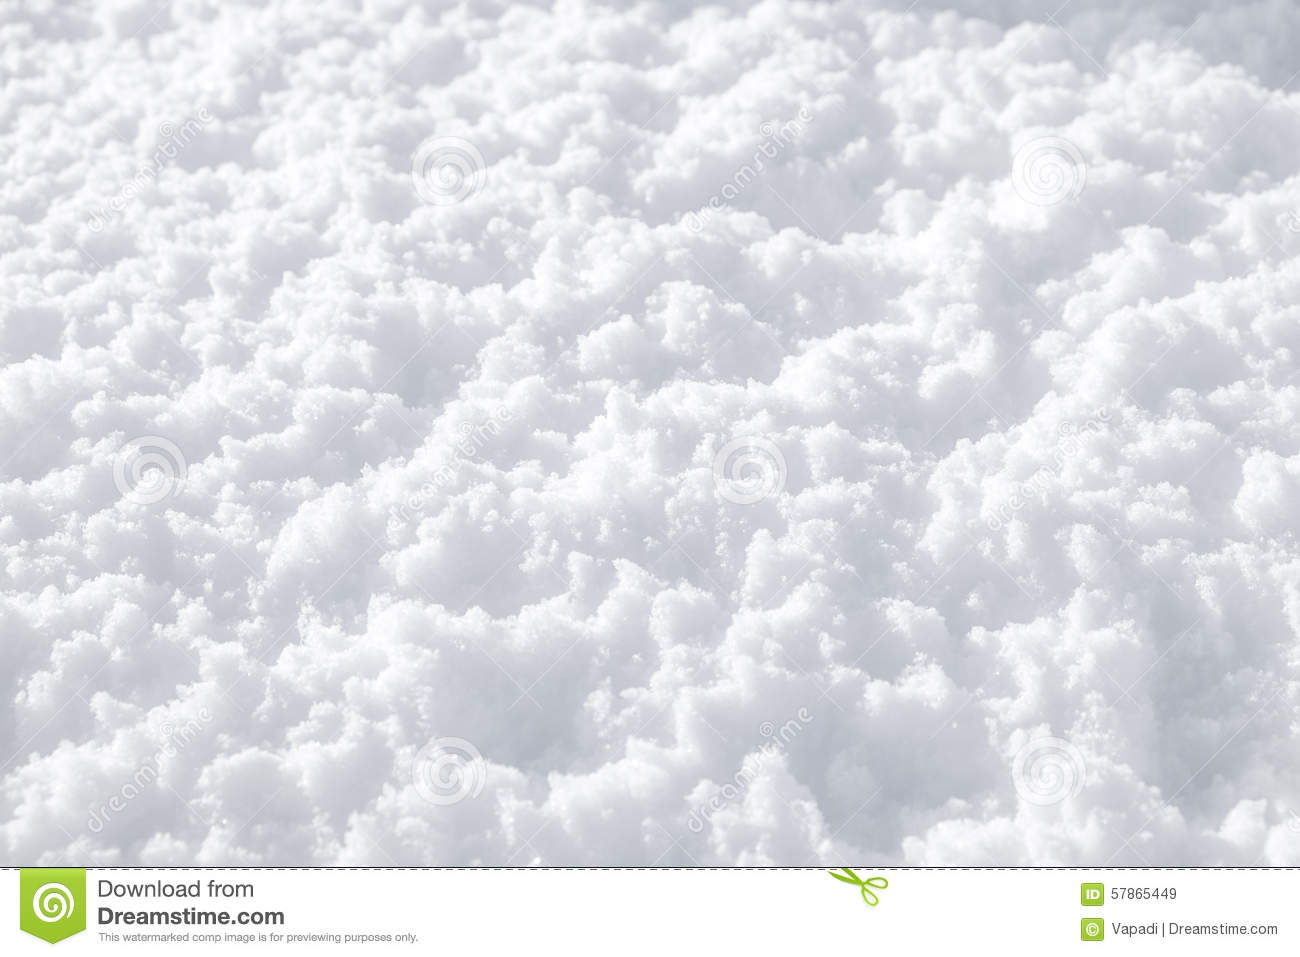 Fluffy Snow Texture Stock Photo - Image: 57865449